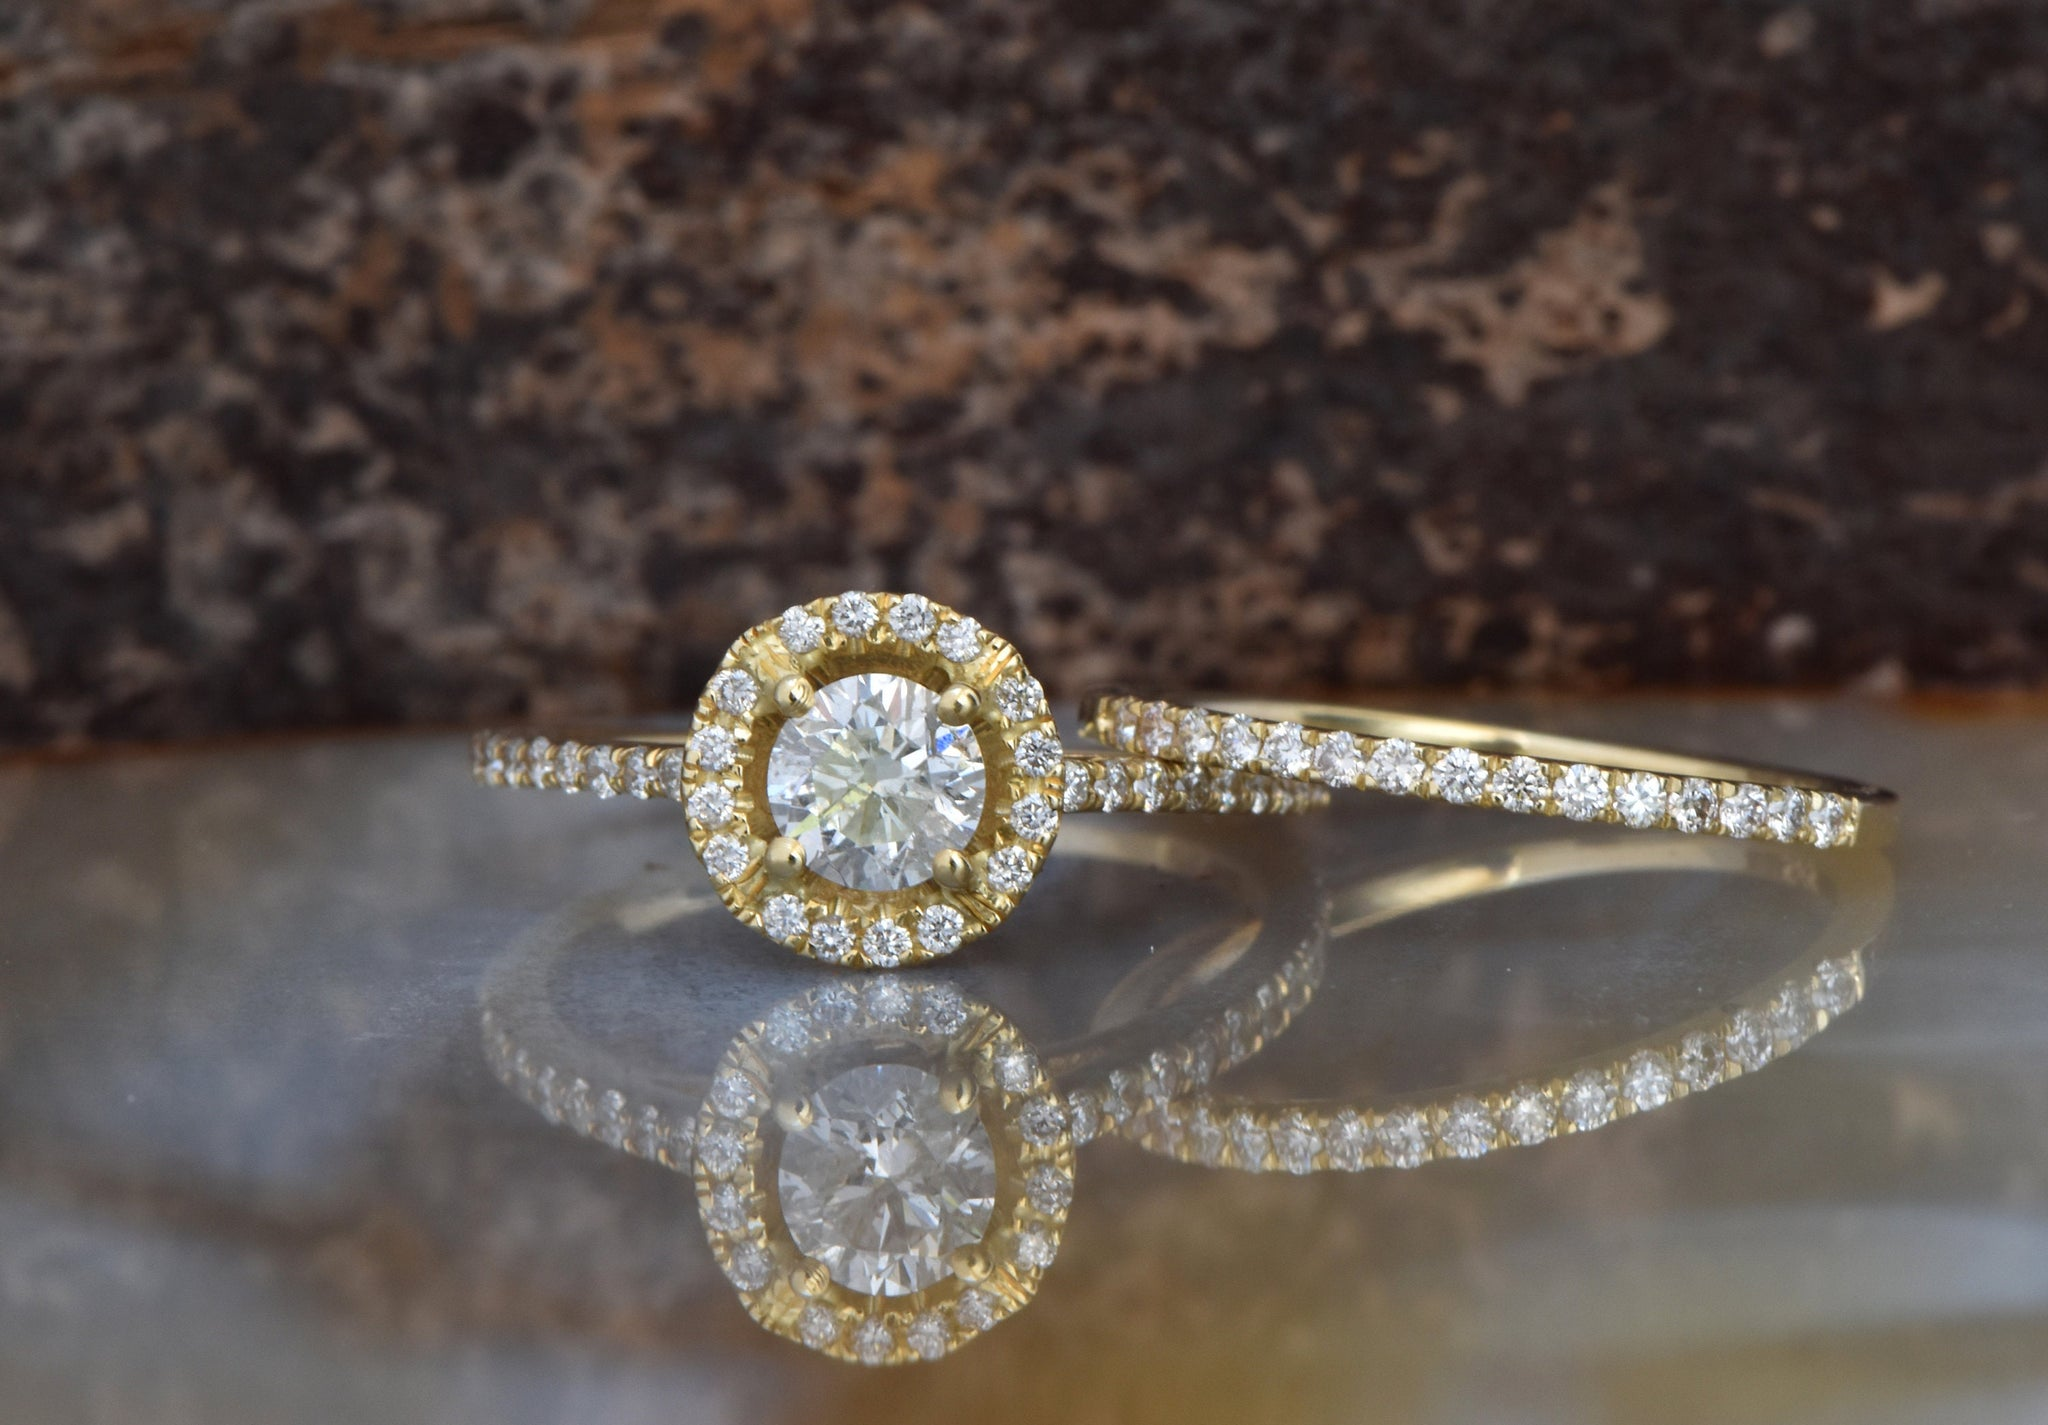 Bridal set rings-Halo diamond engagement wedding sets 1.15 ct-Diamond wedding set-Gold ring-Promise ring